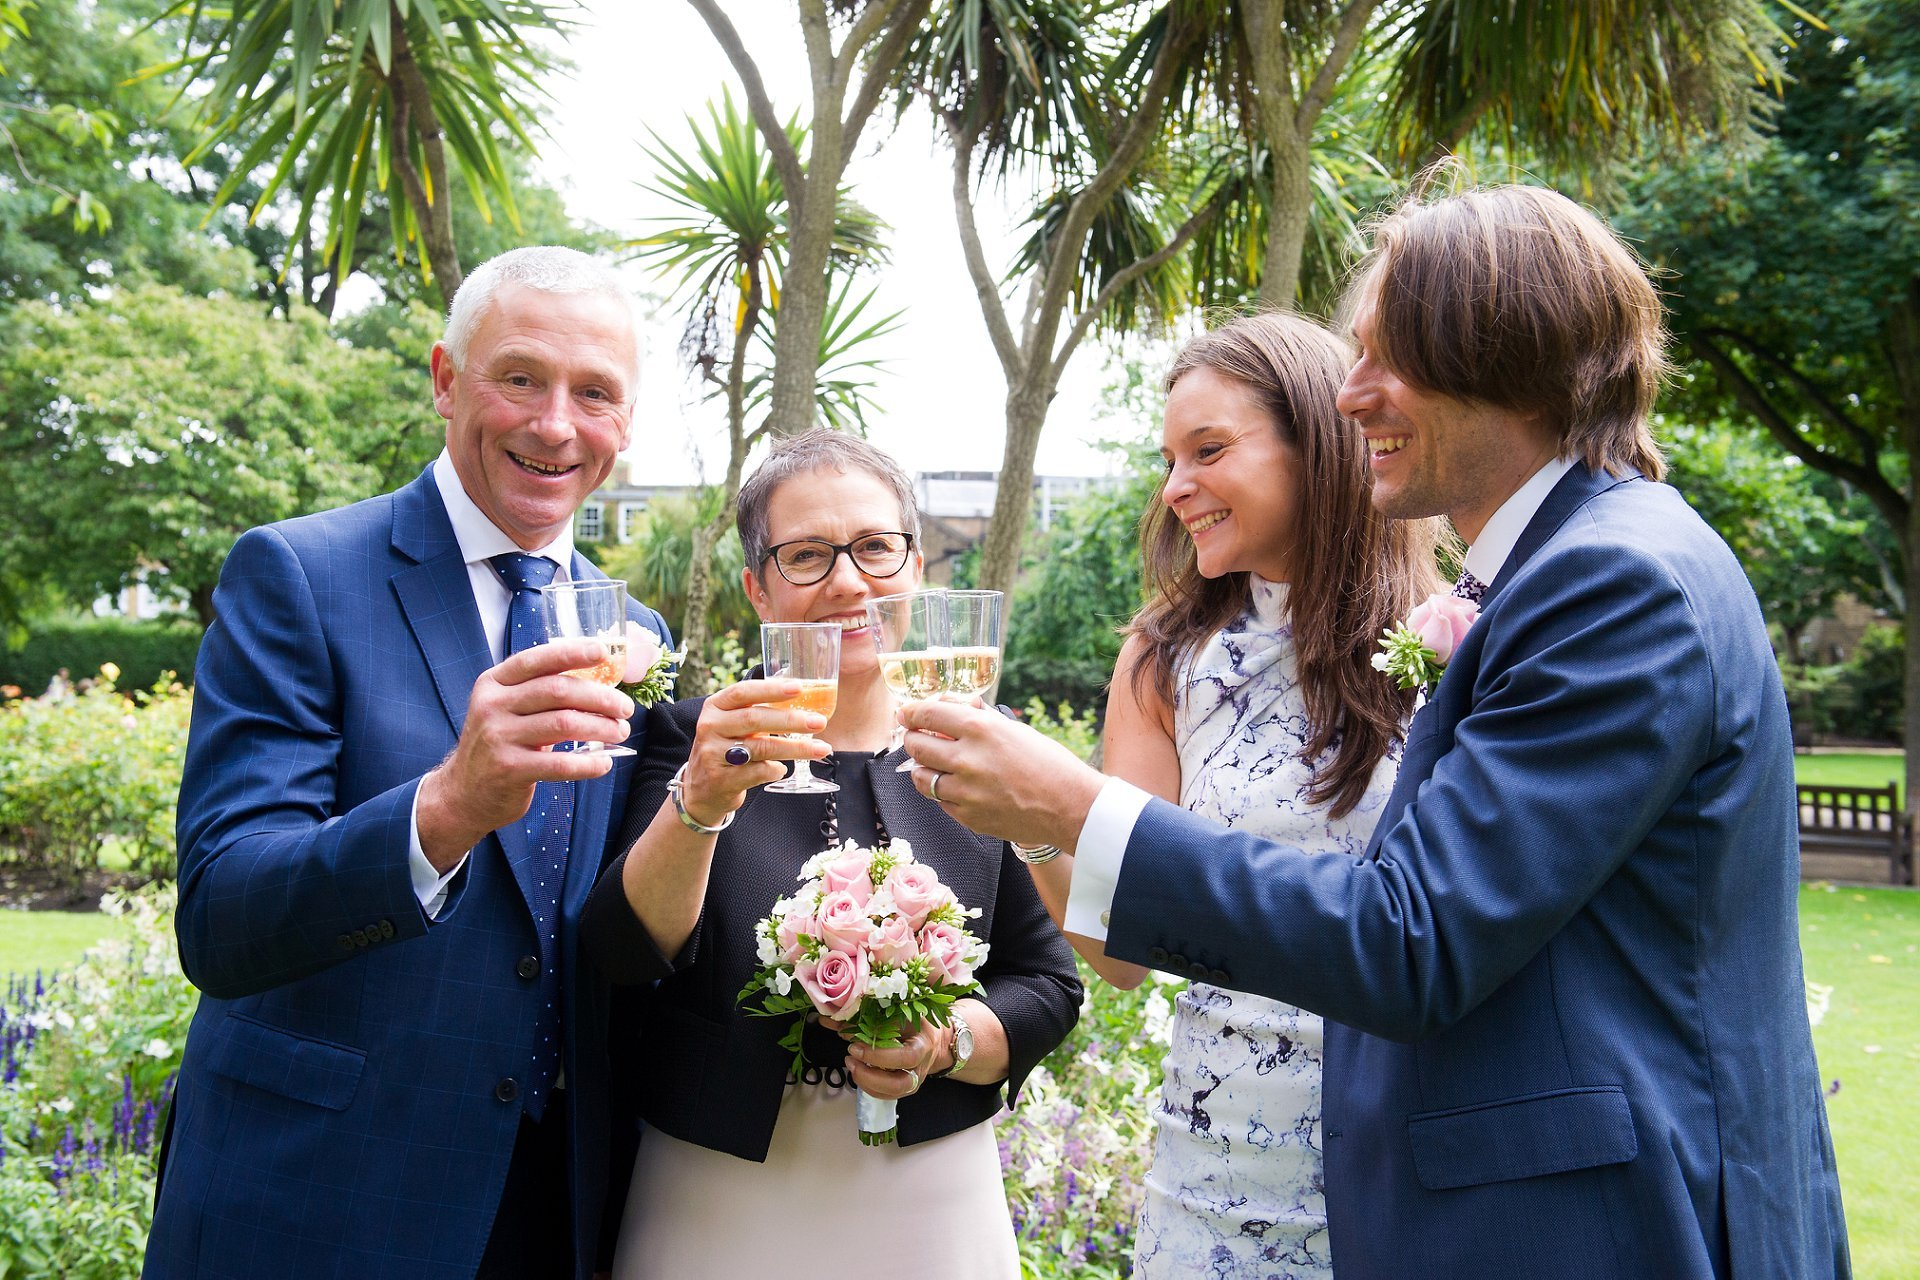 the happy coupld and their two guests and witnesses share a glass of champagne to celebrate the recent marriage